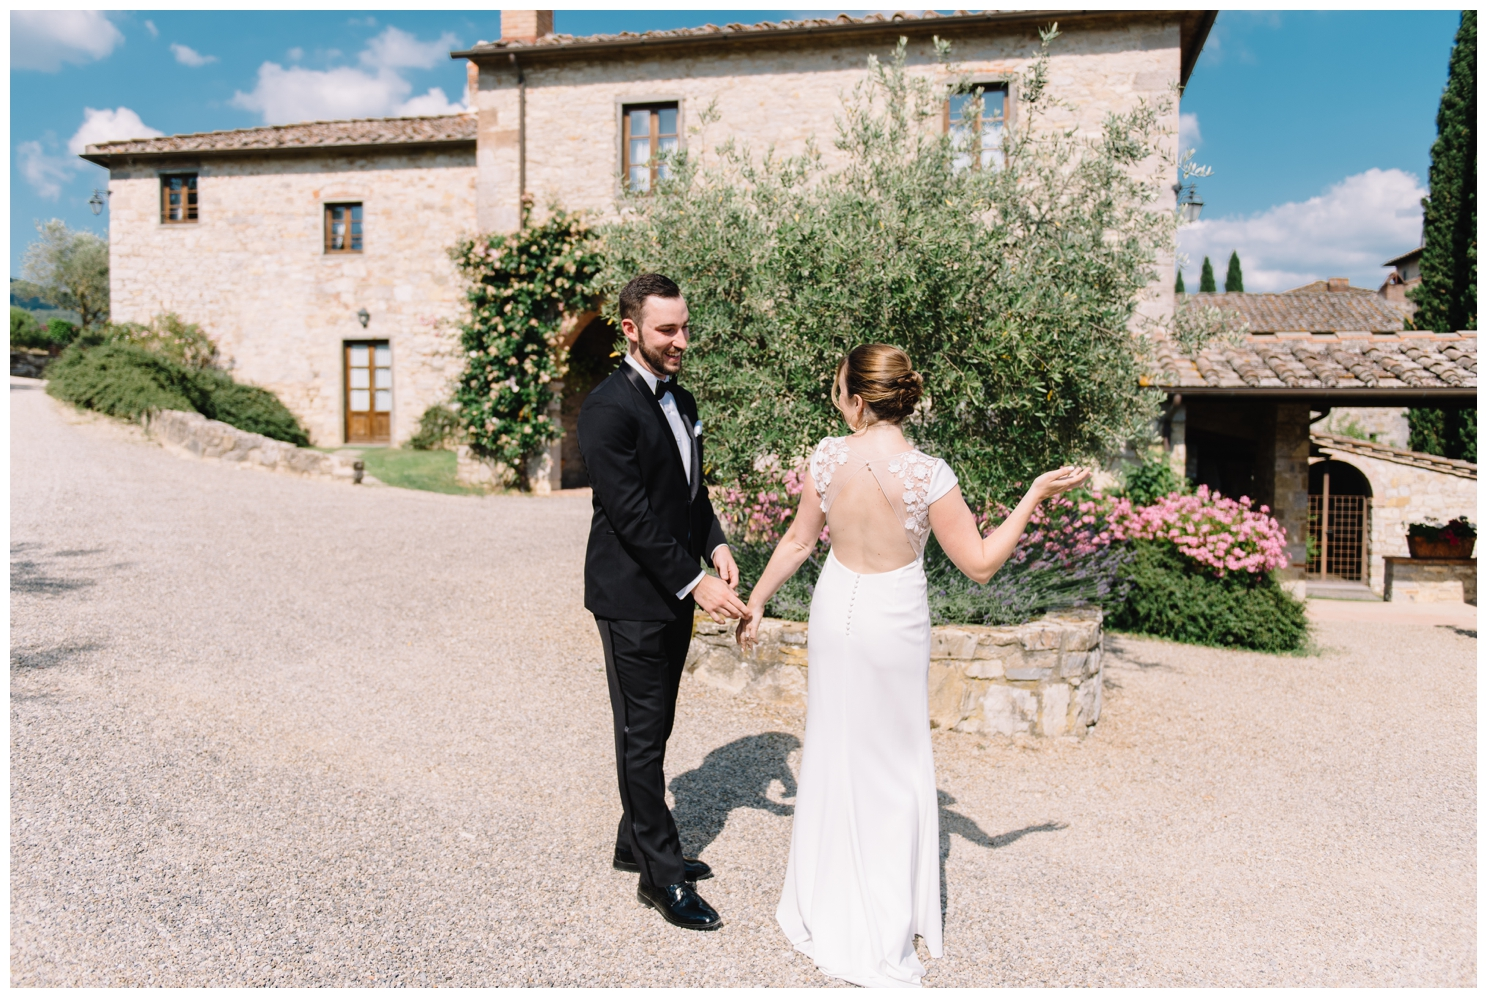 Wedding_Photographer_Tuscany_Italy_0011.jpg